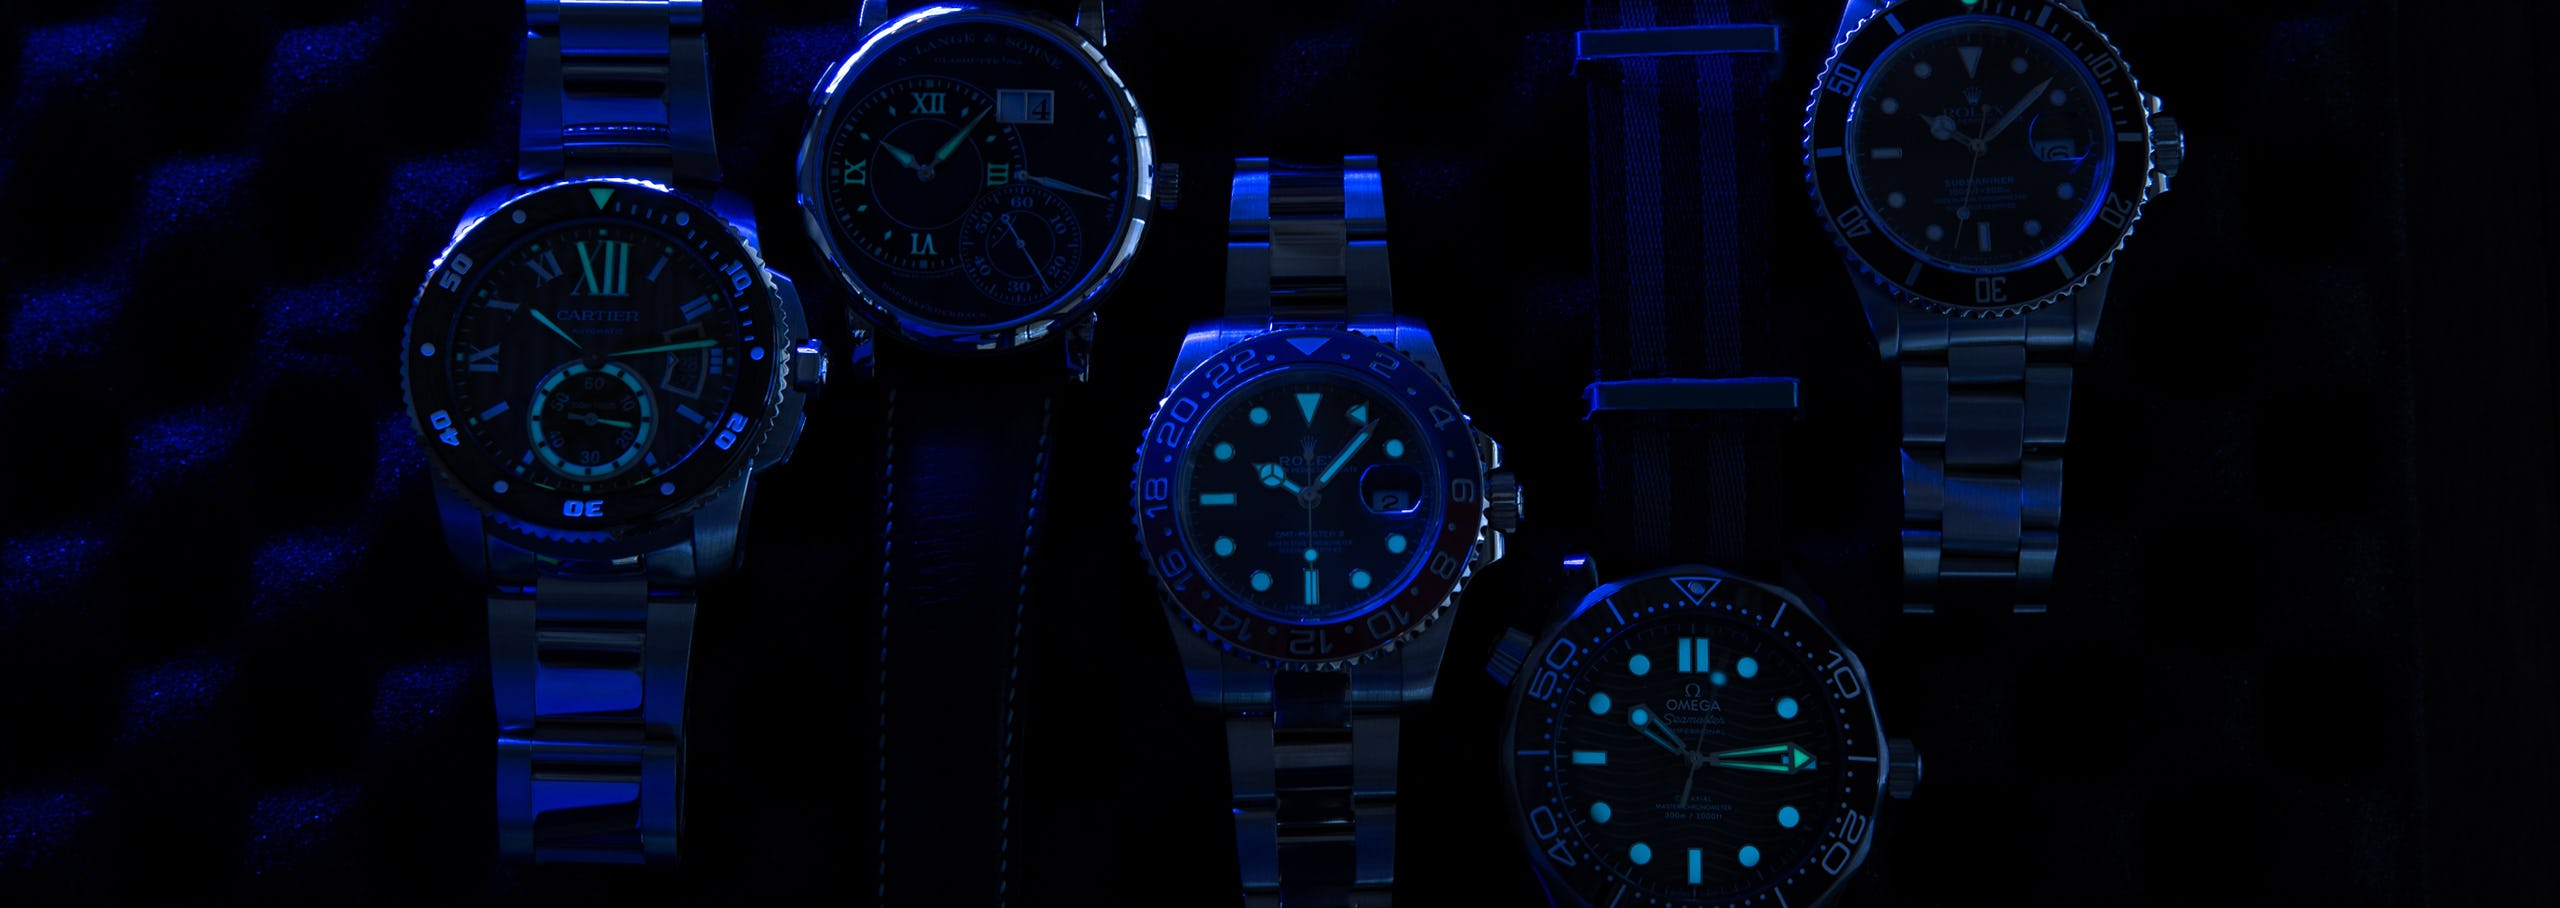 Tales of Lume Watches: Where it all Began